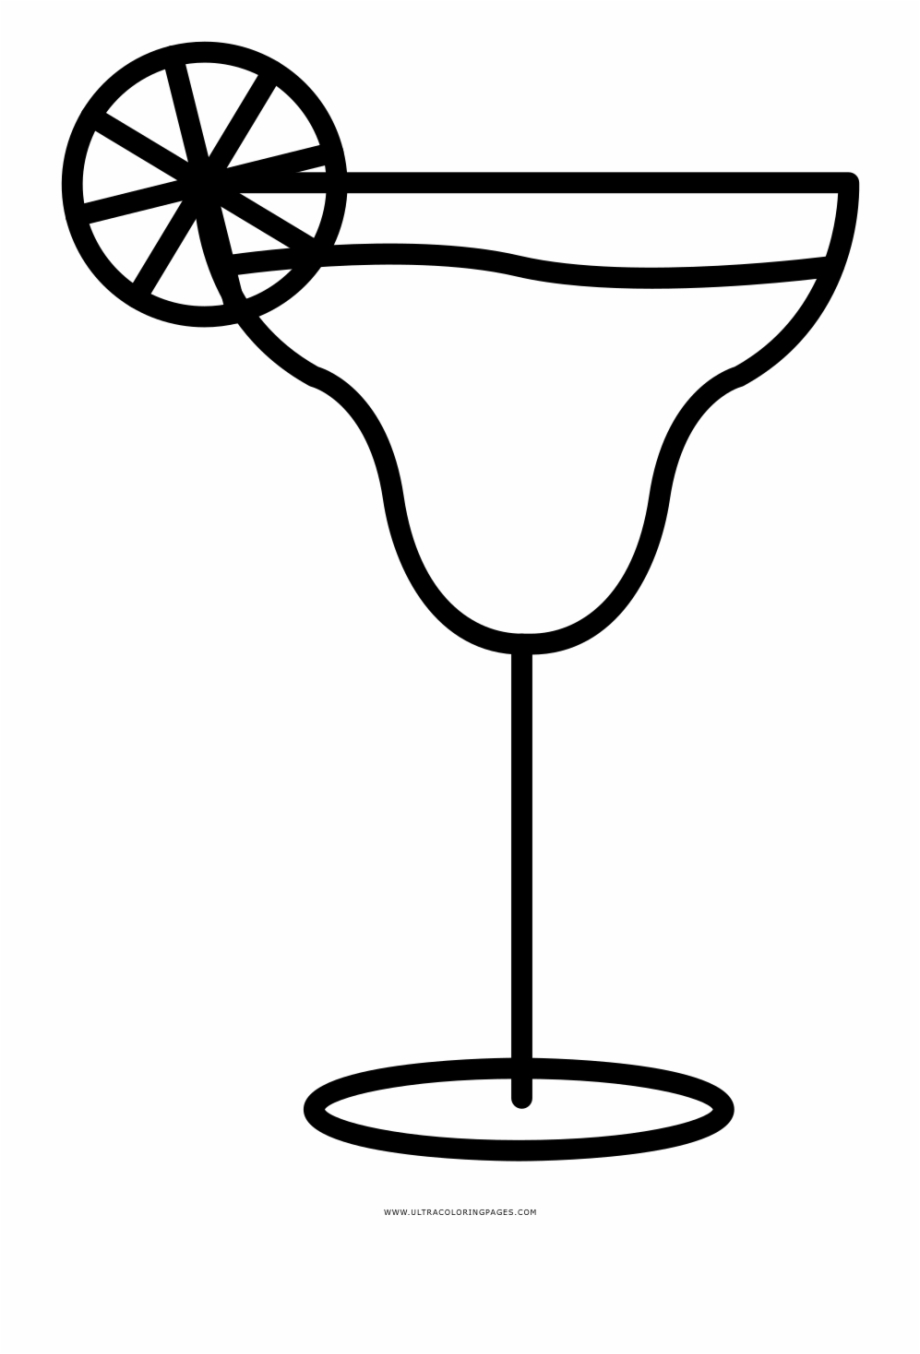 Free Margarita Clipart Black And White, Download Free Clip.